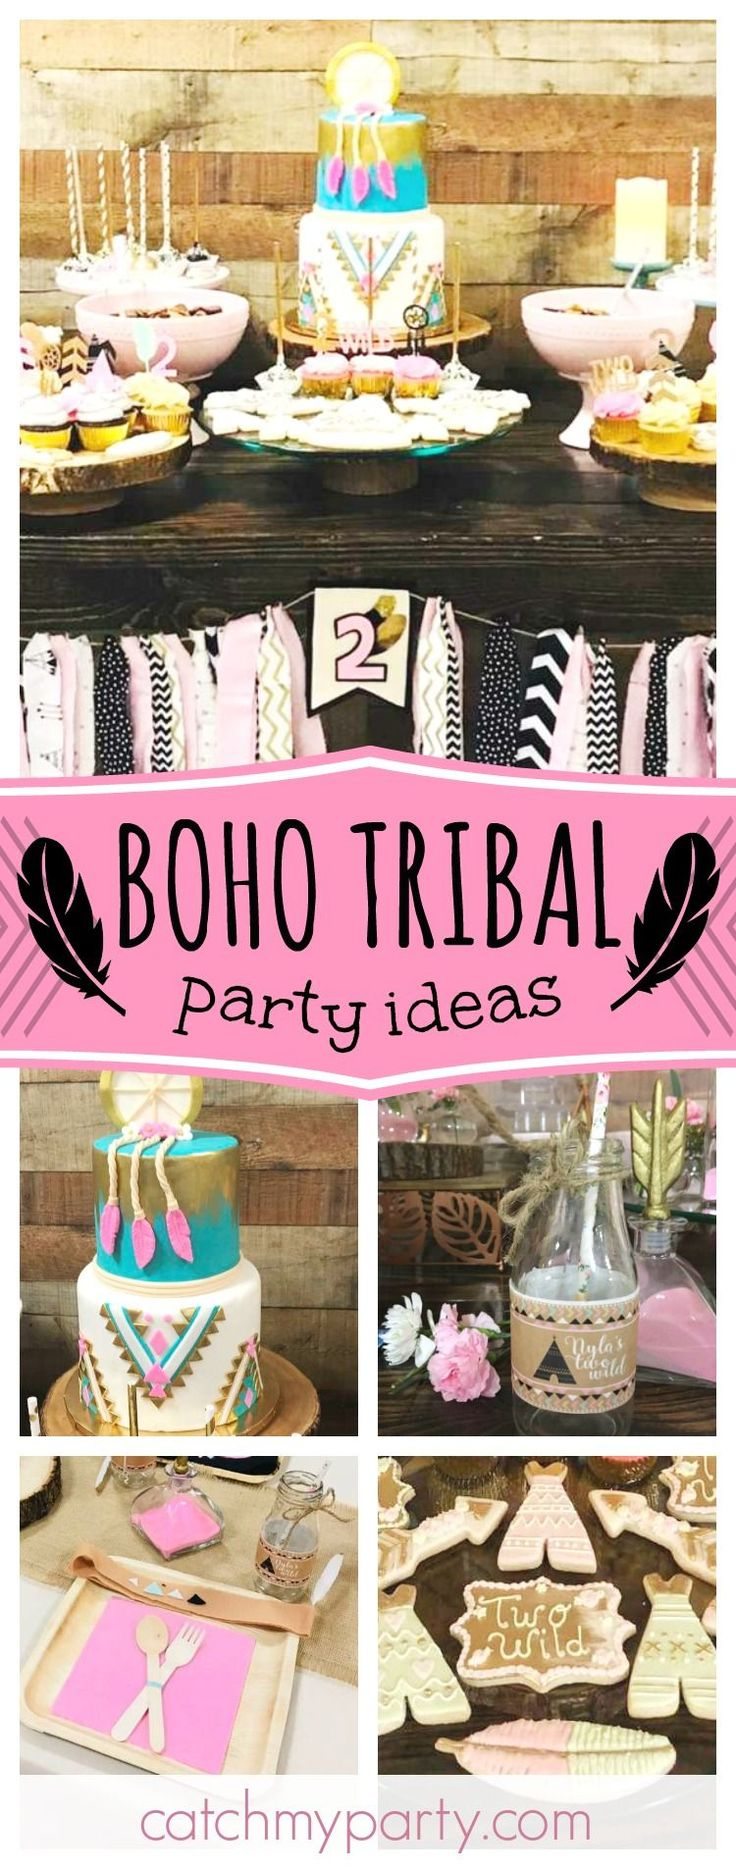 Check out this adorable boho tribal 2nd